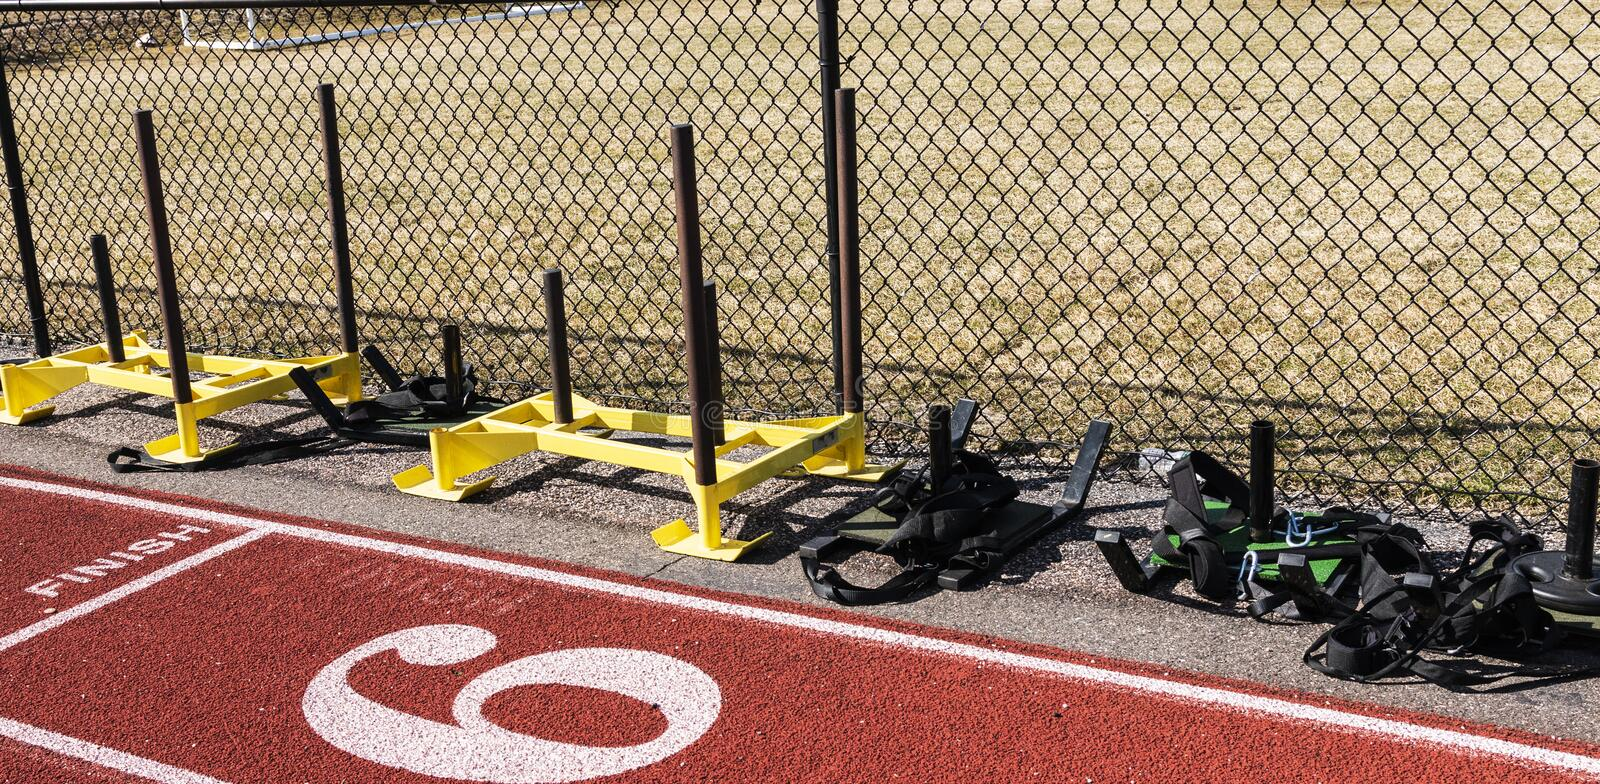 Push and pull weight sleds on the side of a track stock images